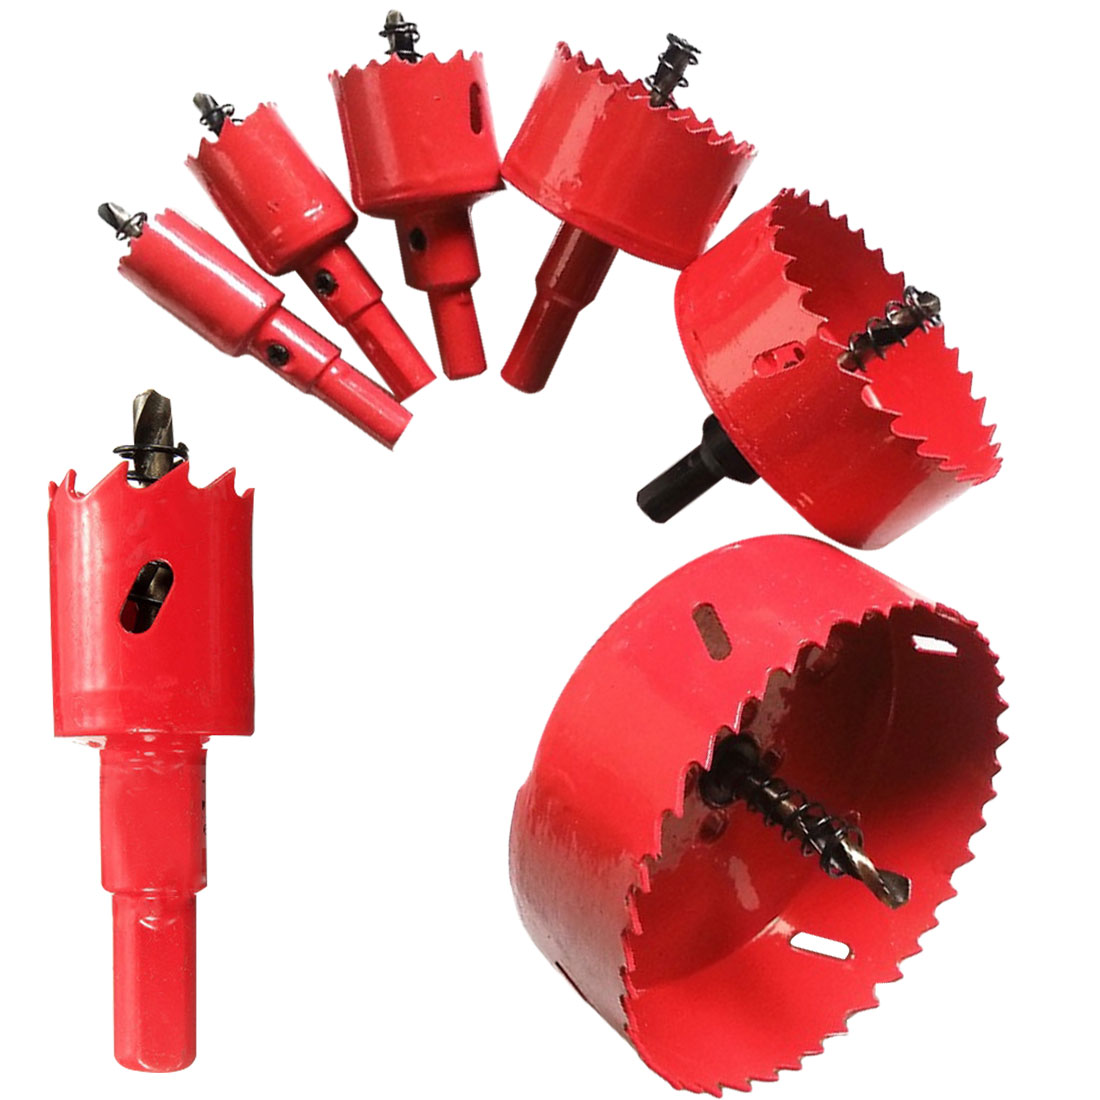 Metal Holes Drilling Kit Carpentry Tools 16mm-50mm Drill Bit Hole Saw Twist Drill Bits Cutter Power Tool For Wood Steel Iron